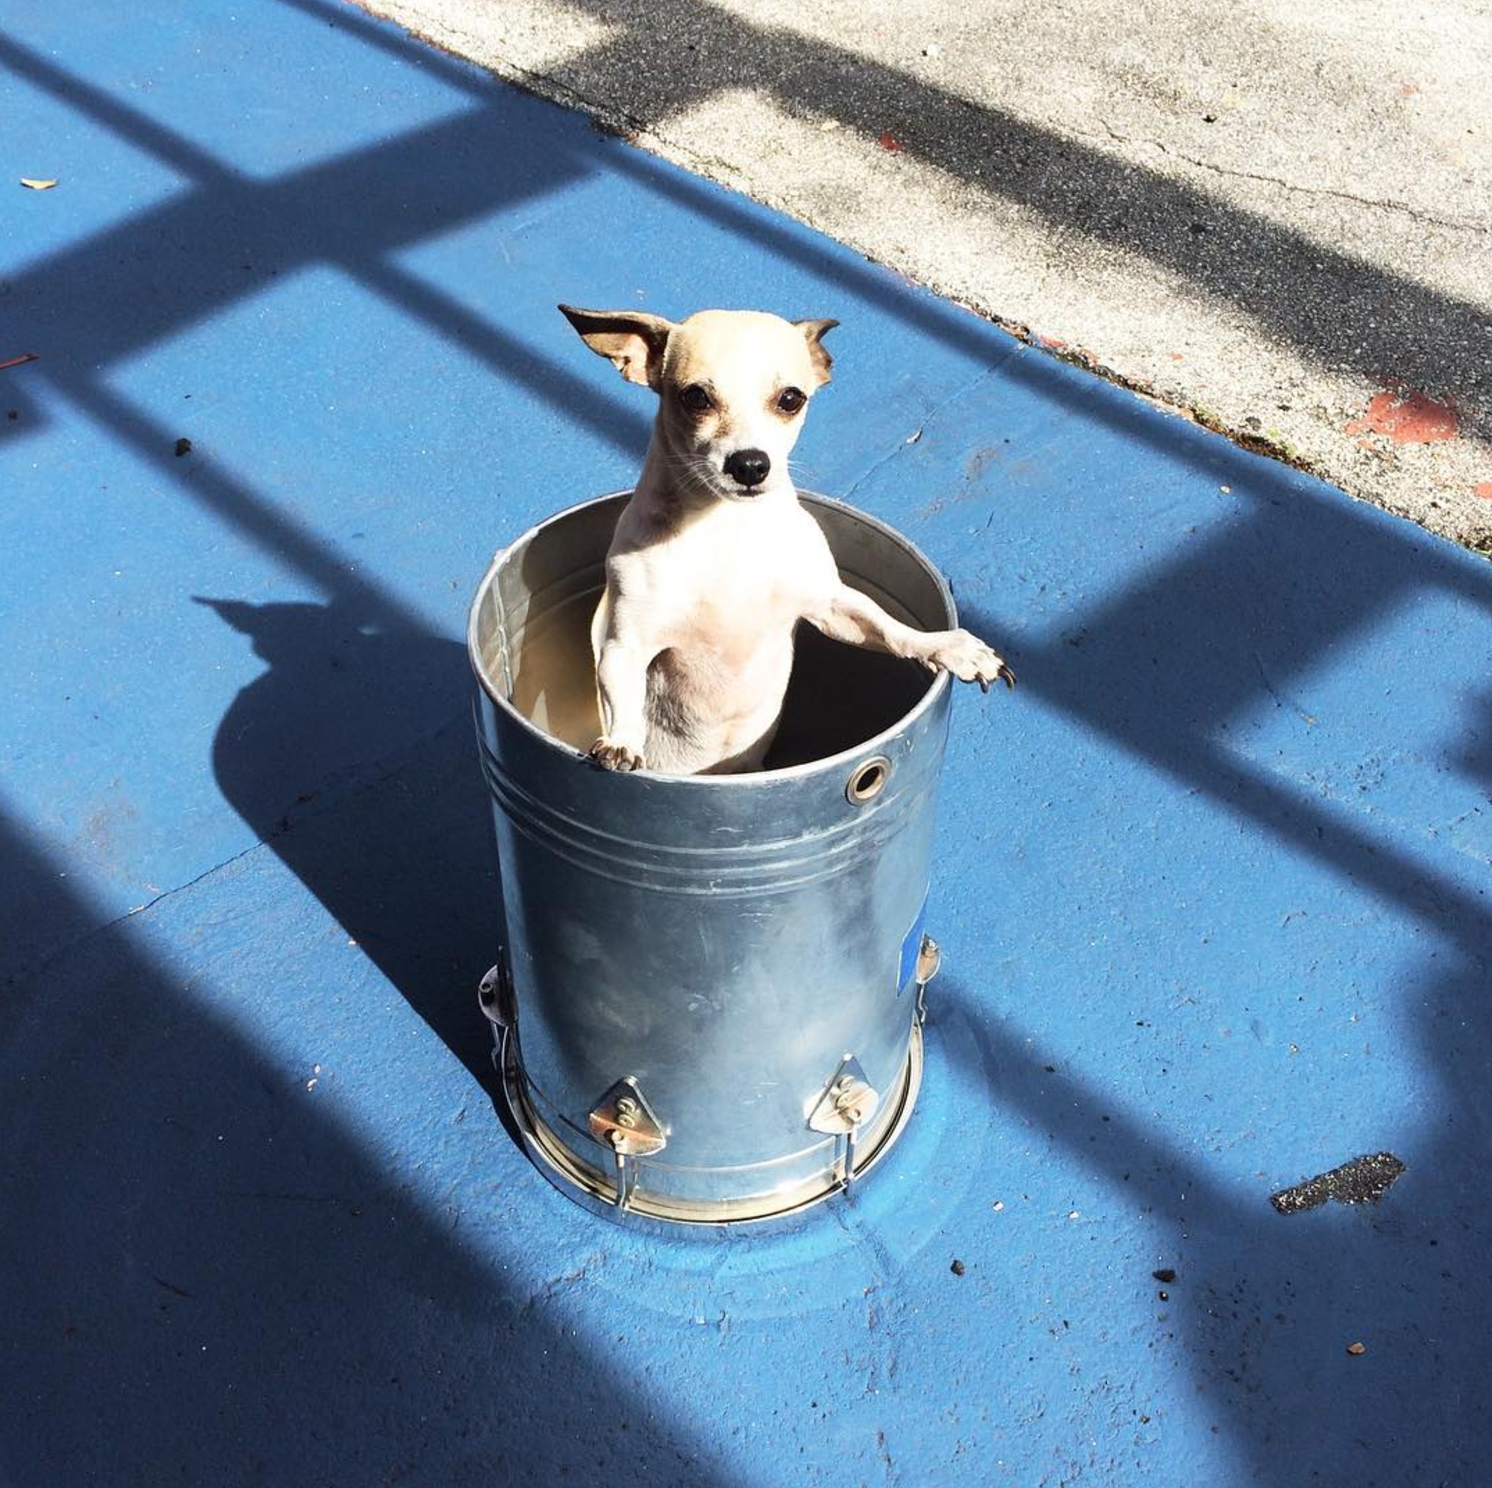 @nikareally and a dog in a bucket.